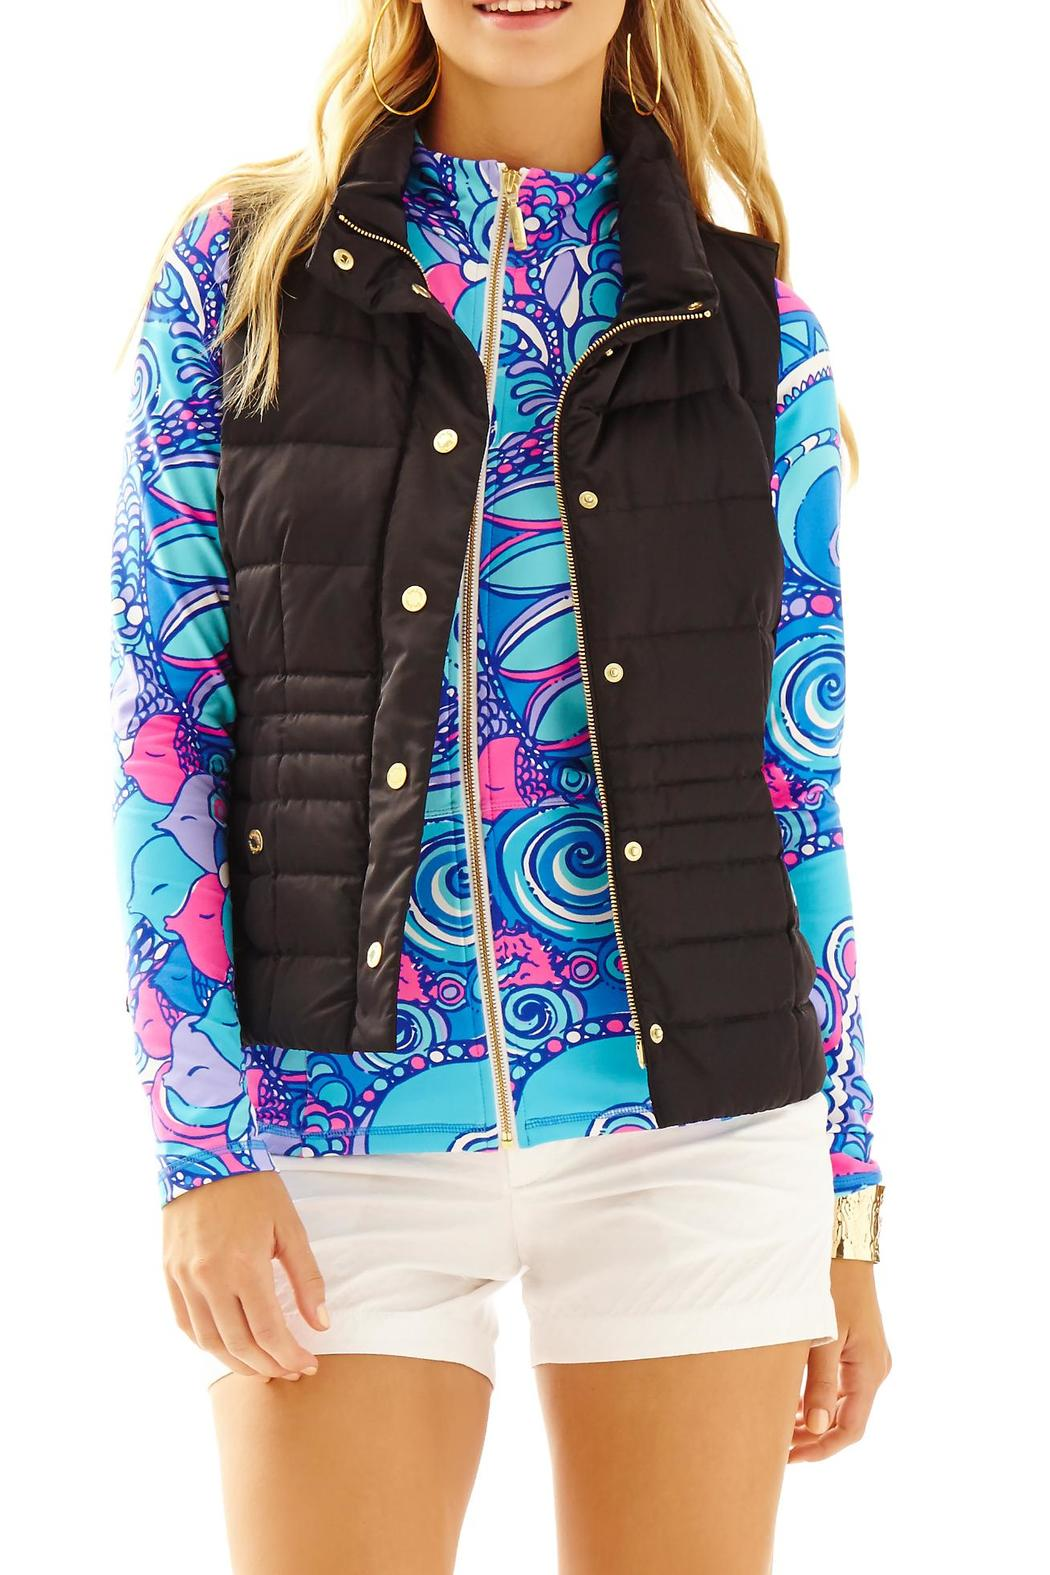 560023a06c5c32 Lilly Pulitzer Isabelle Puffer Vest from Sandestin Golf and Beach ...